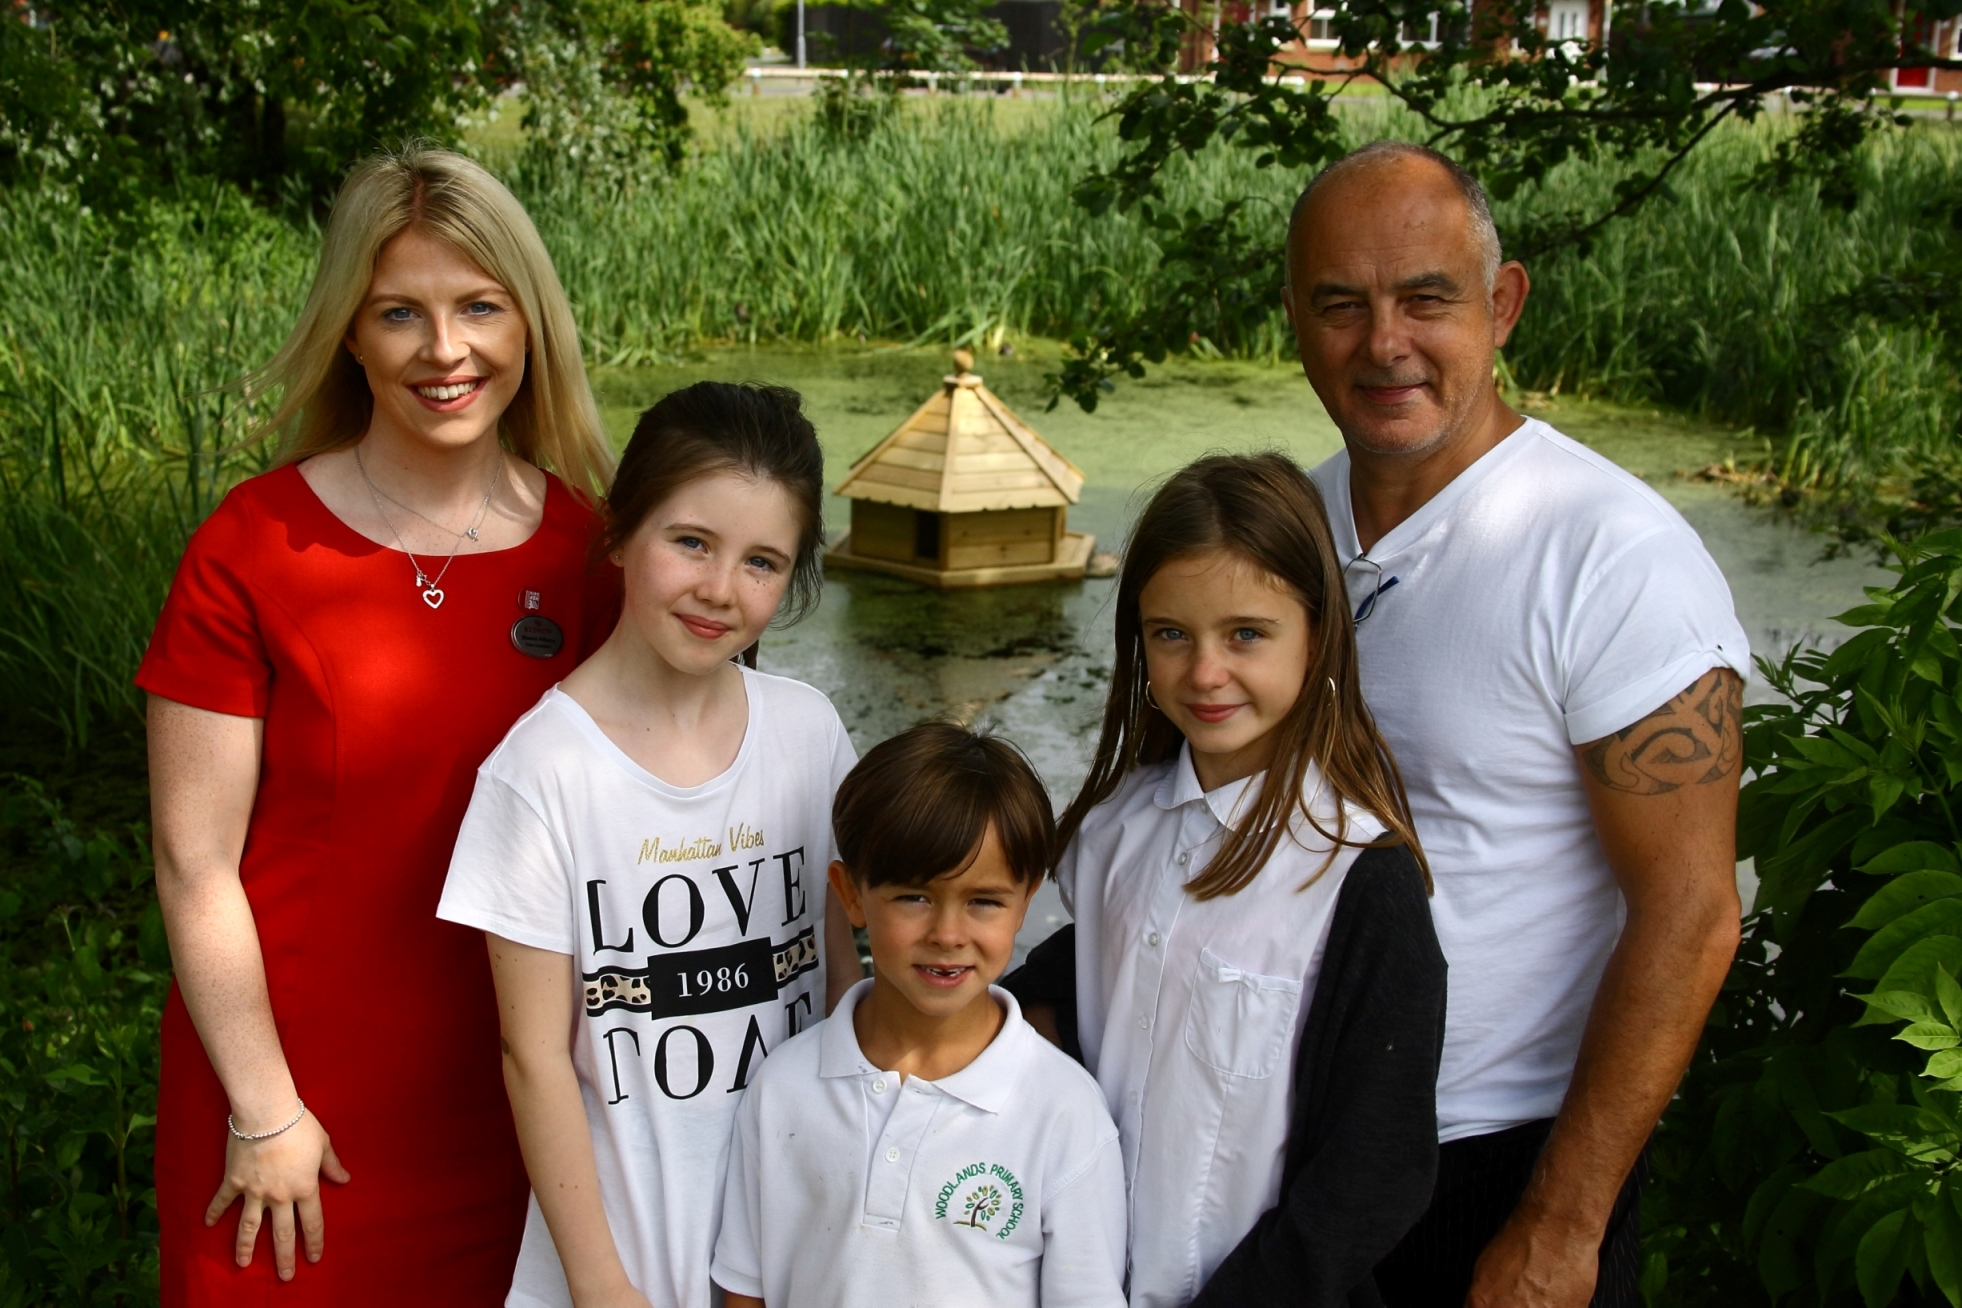 Great Sutton community pond group enjoys new duck house and bird feeder thanks to Redrow grant